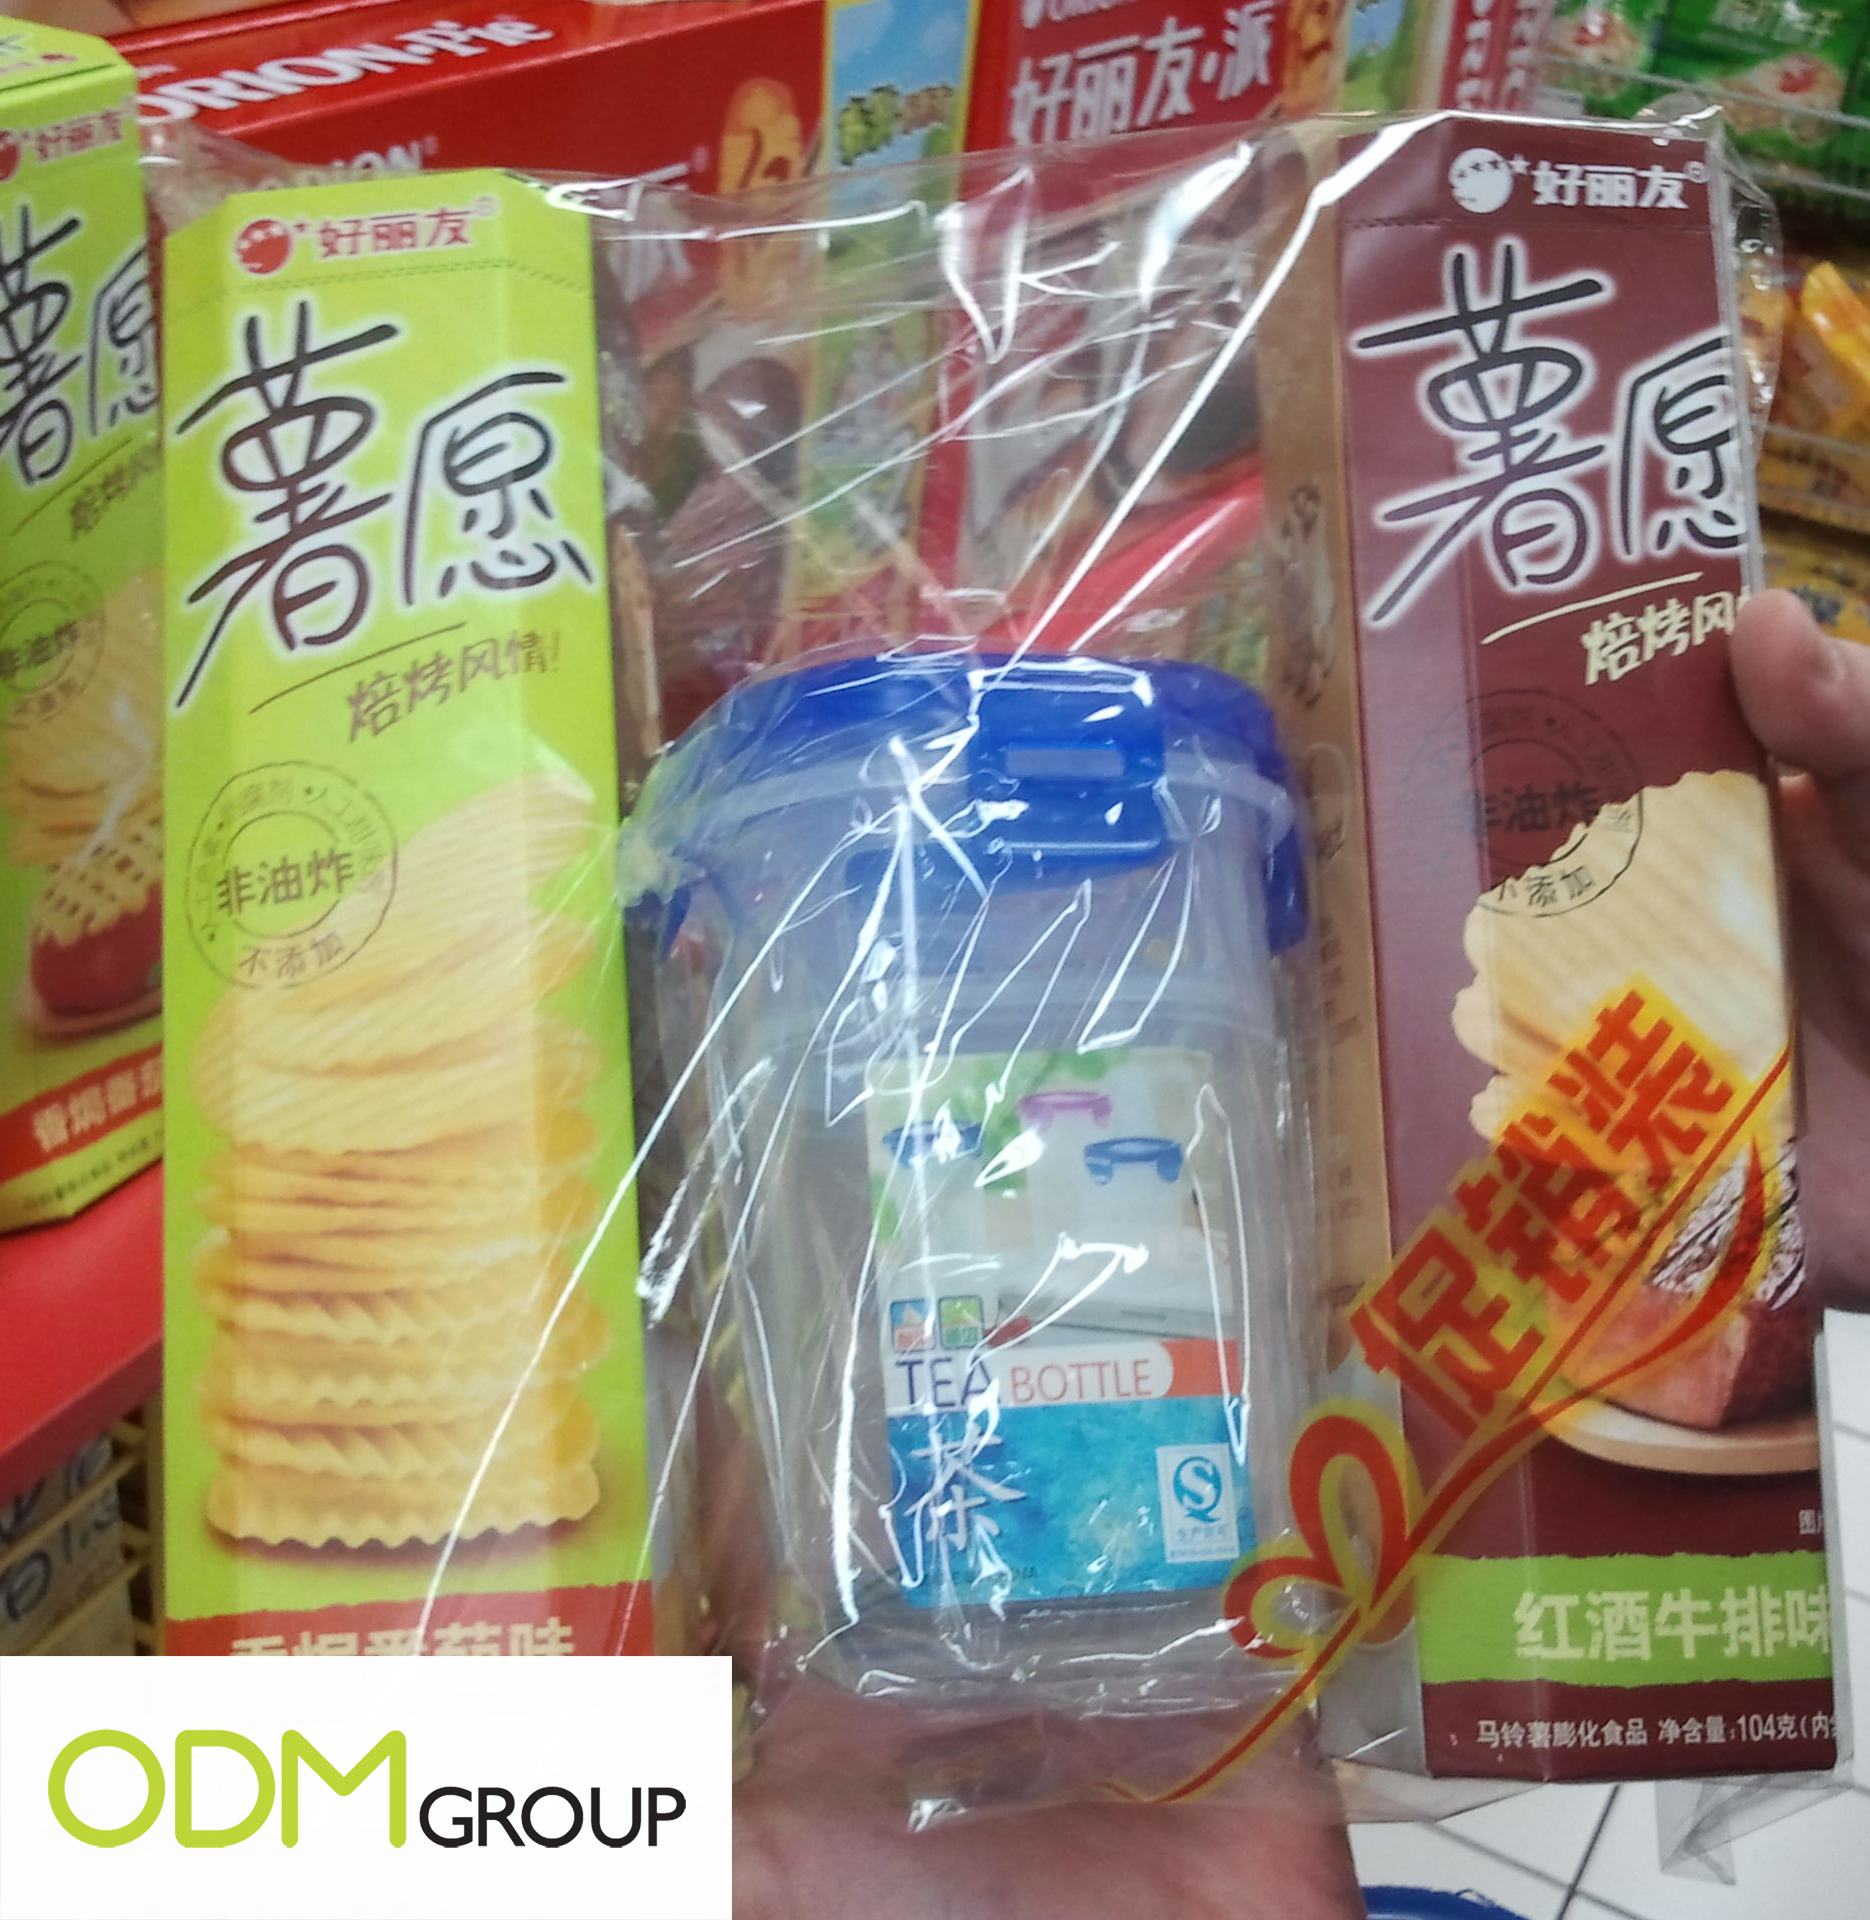 2012 06 19 15.40 Orion China GWP   Tea Bottle